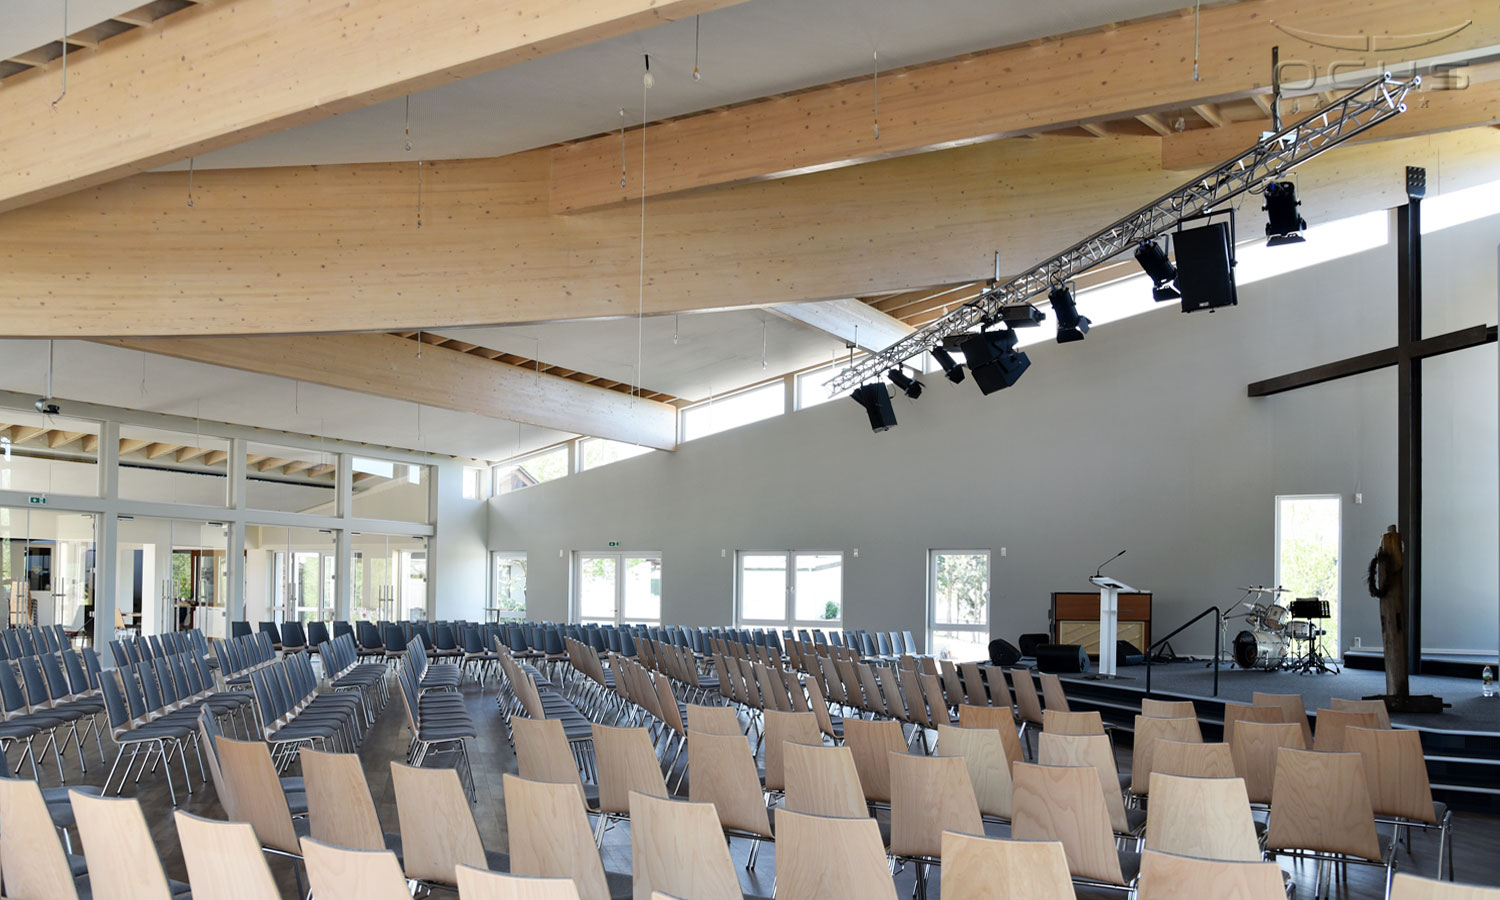 Free Evangelical Church in Simmern